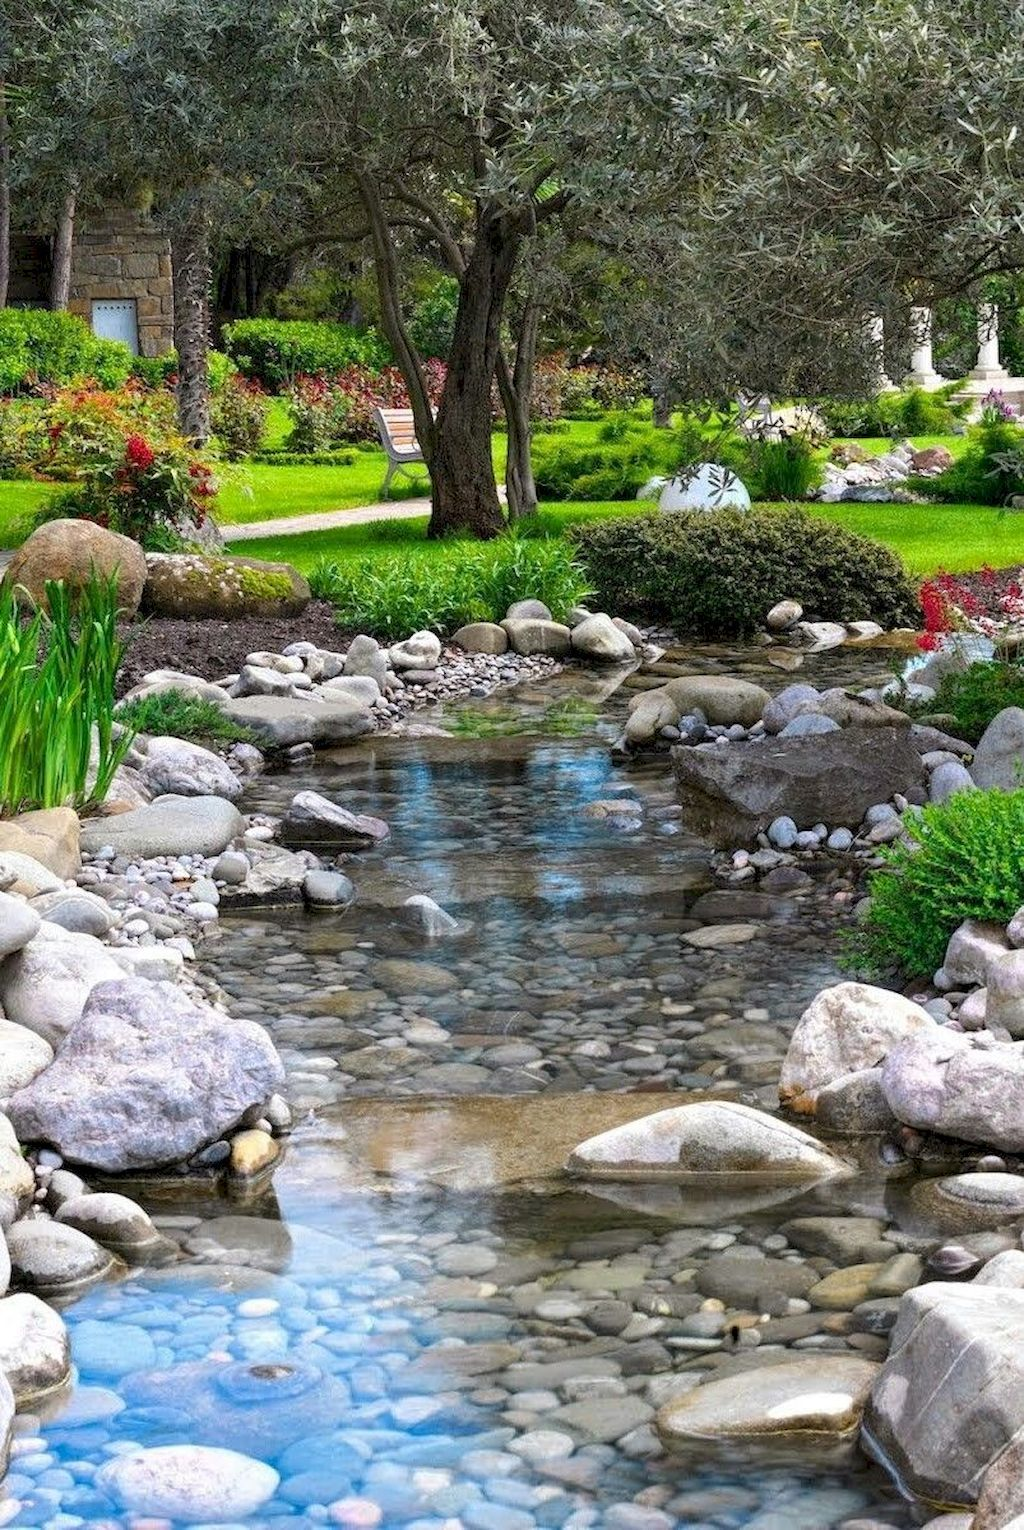 01 Beautiful Backyard Ponds and Water Garden Landscaping Ideas #beautifulbackyards